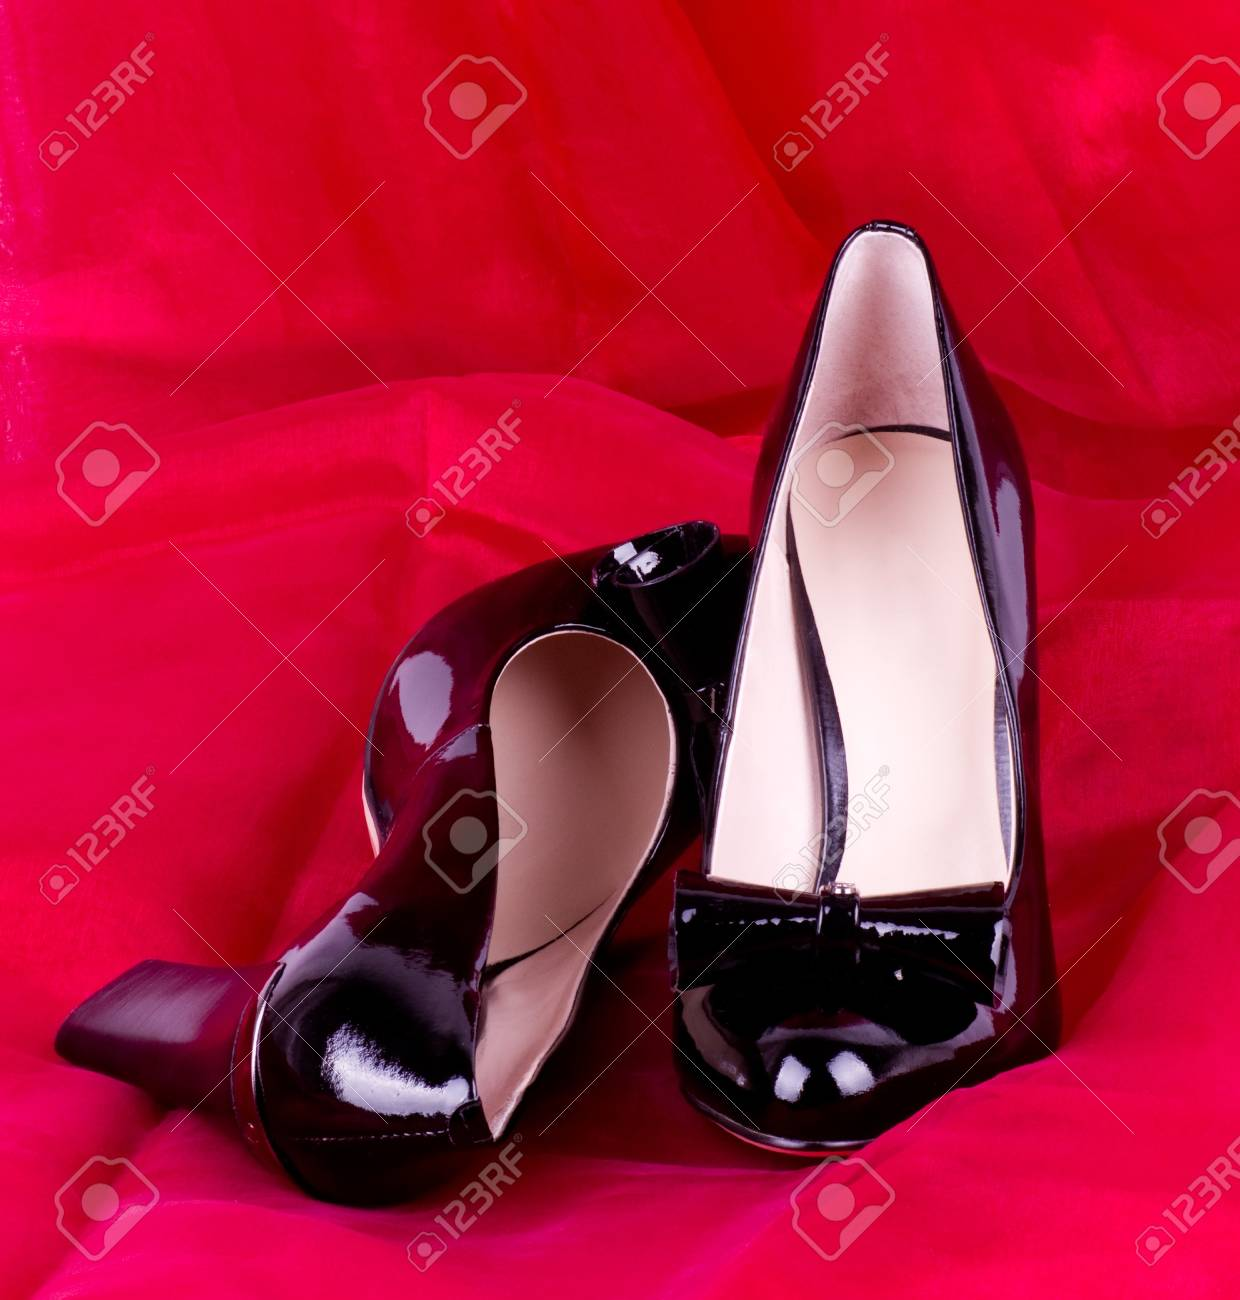 Sexy fashionable shoes on red background Stock Photo - 13081800